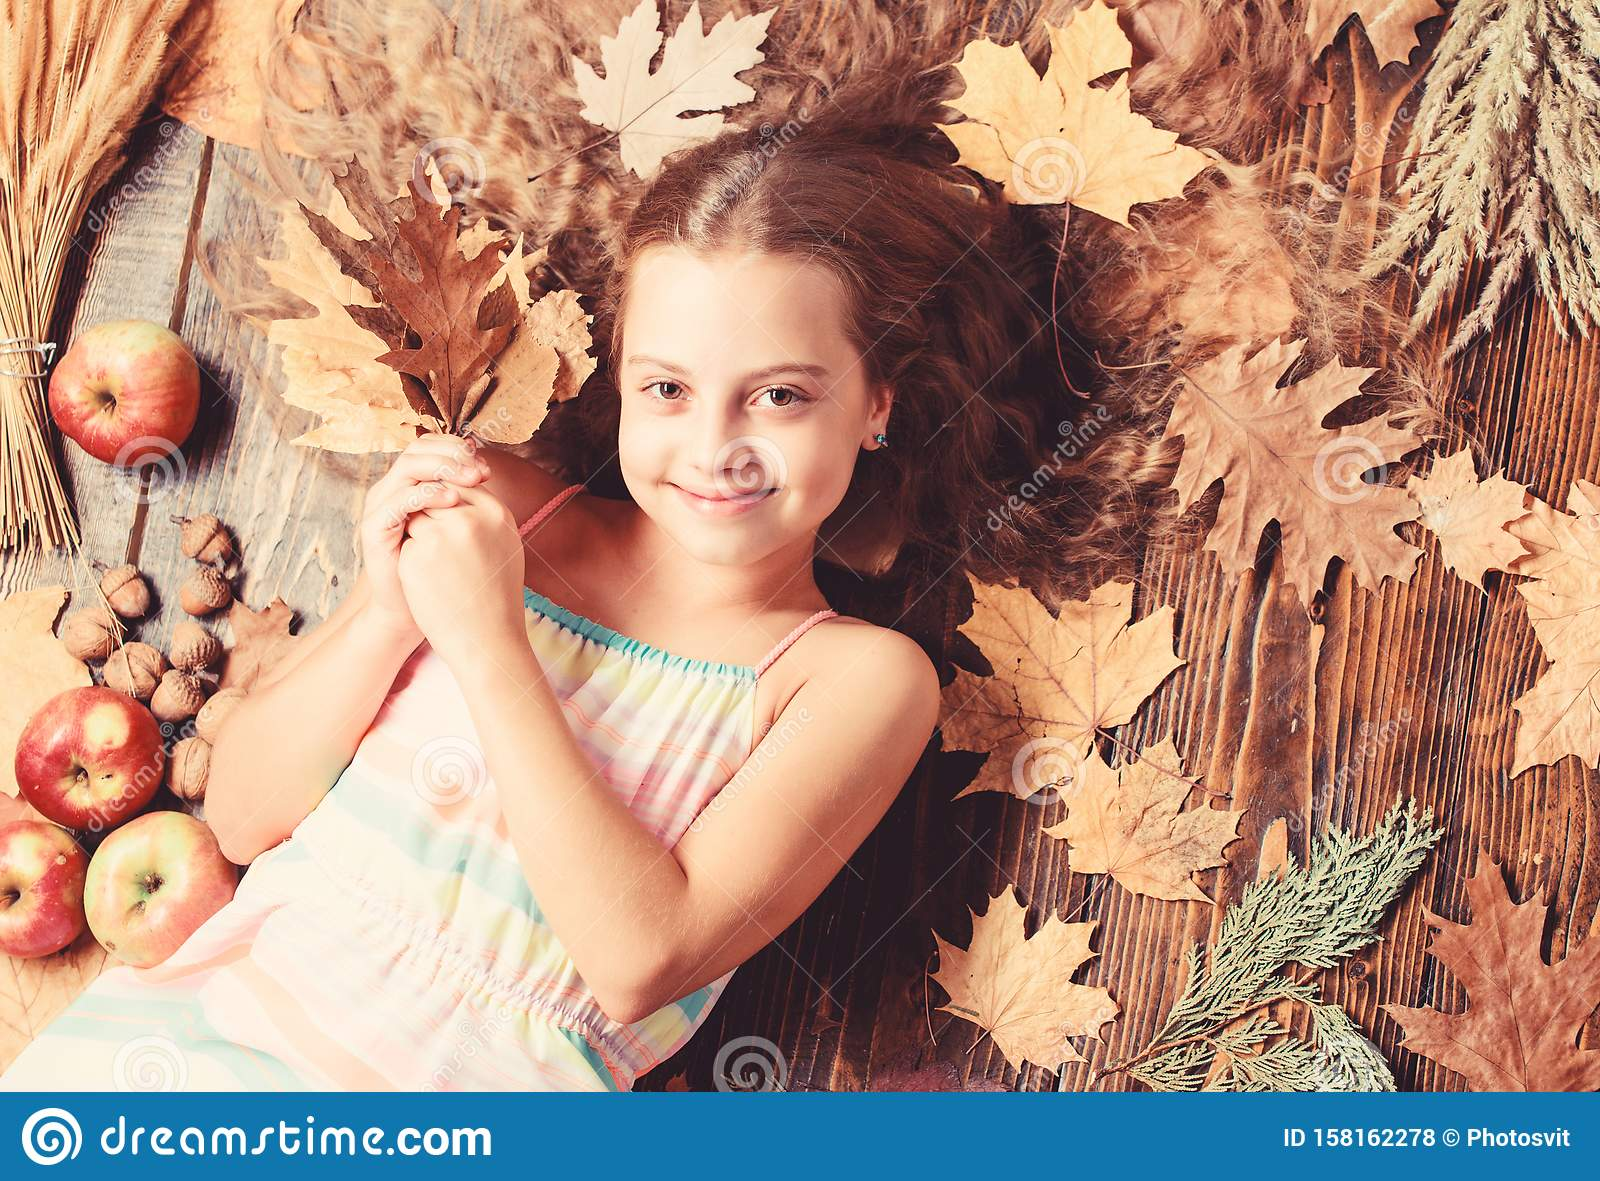 Her hair at its best. Little girl with wavy hairstyle on fall background. Small beauty model with fall look. Hair salon